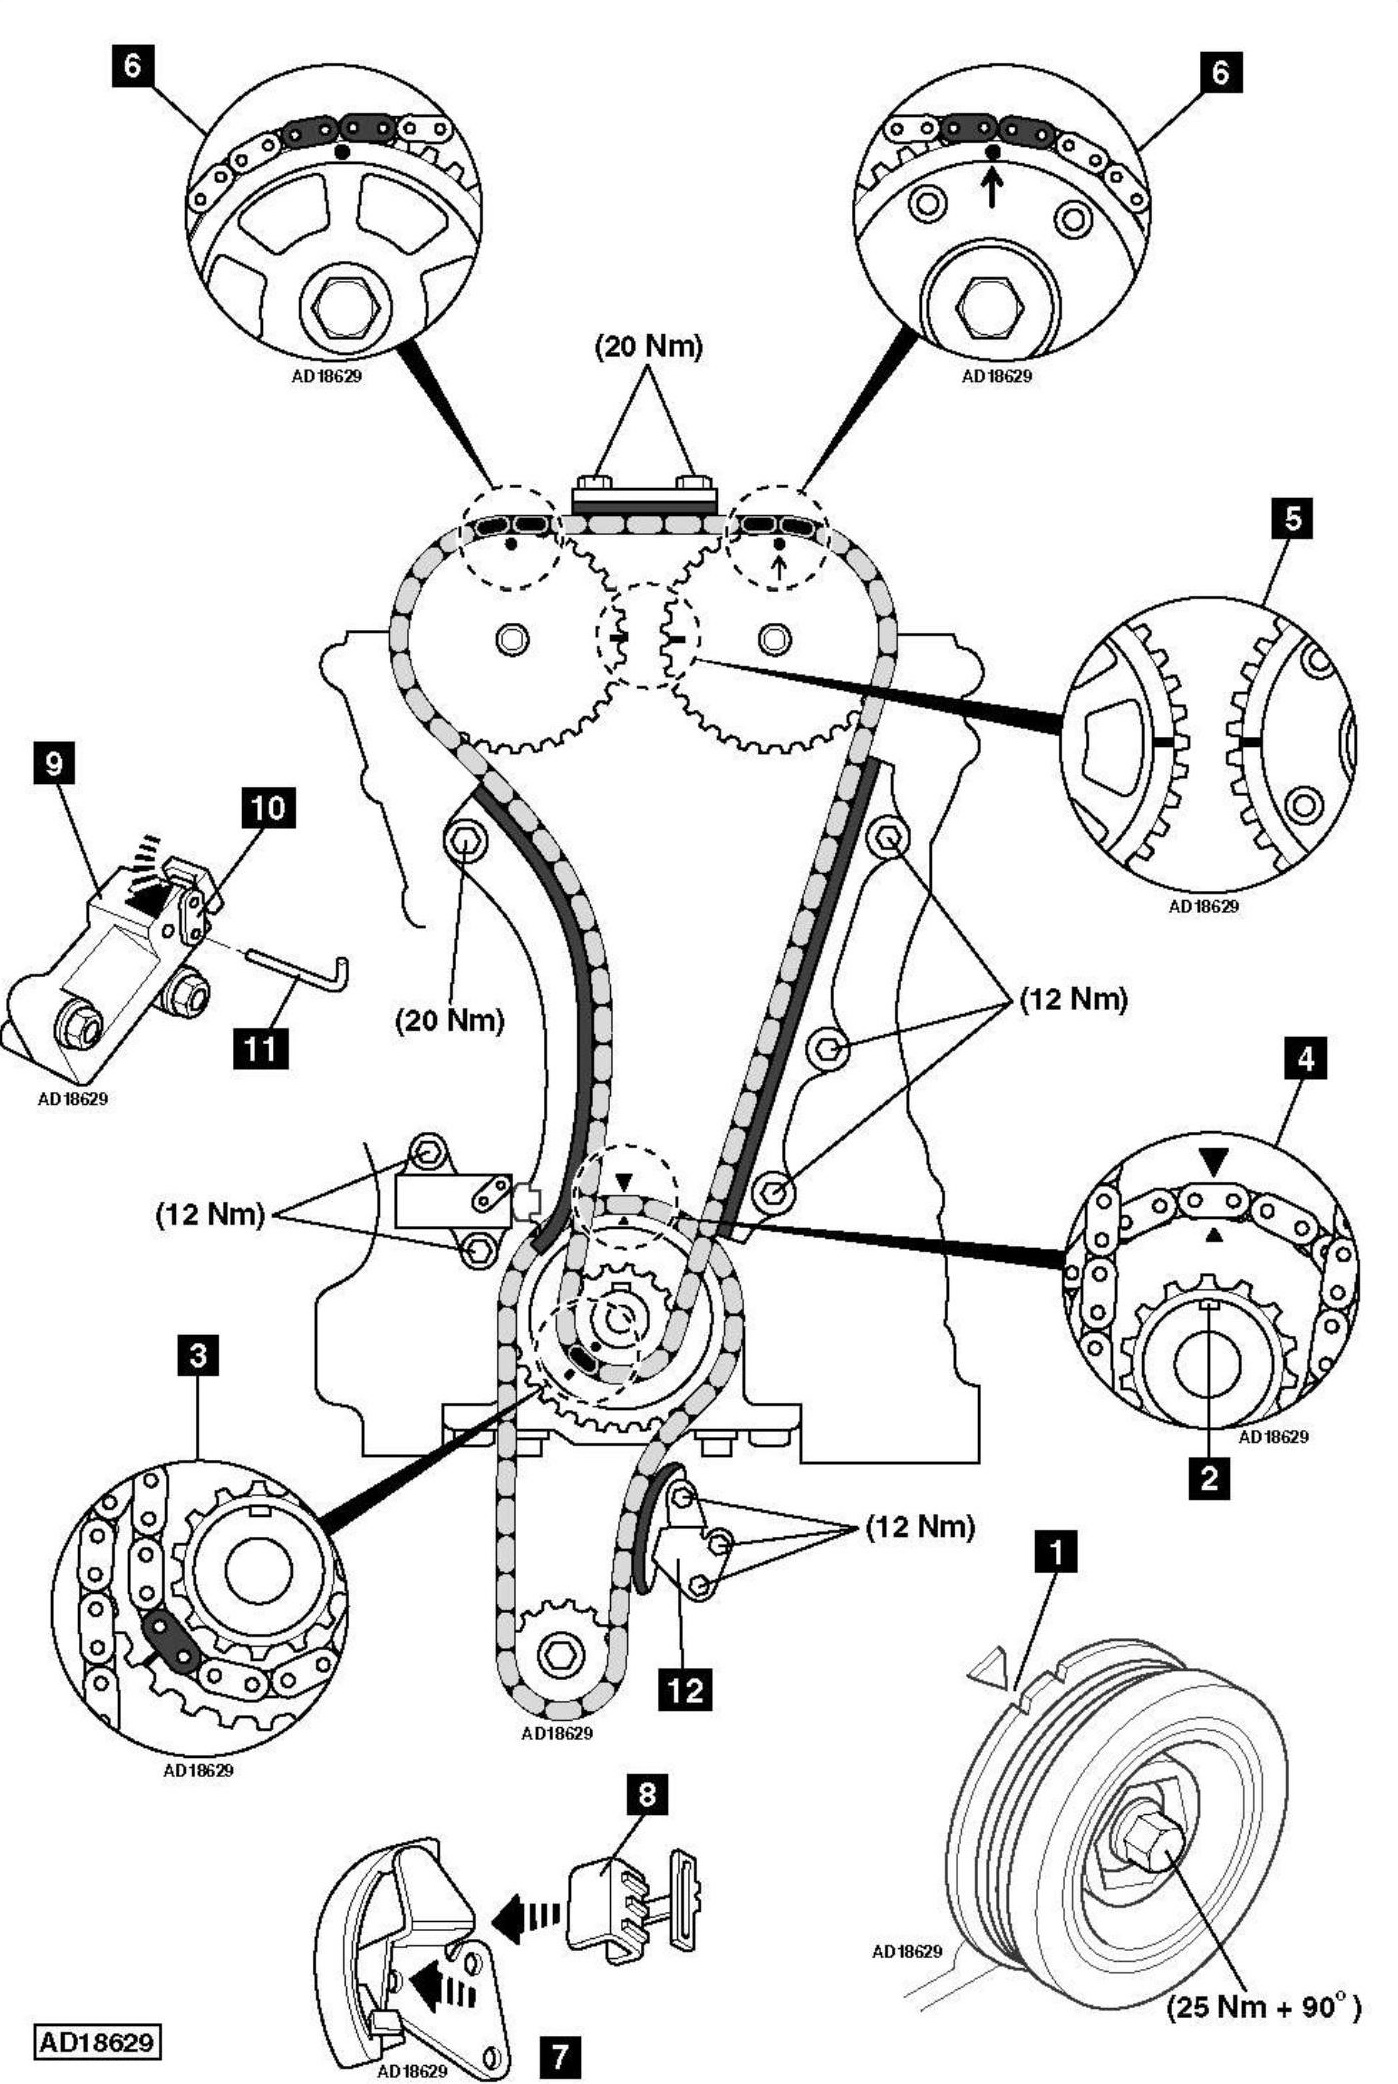 1952 Chevrolet Wiring Diagram moreover How To Replace Timing Belt On Peugeot 307 1 6 16v 2006 furthermore Lincoln Aviator Fuse Box in addition Audi Quattro Concept Car as well Schumacher Battery Charger Circuit Schematic. on alfa romeo wiring diagram